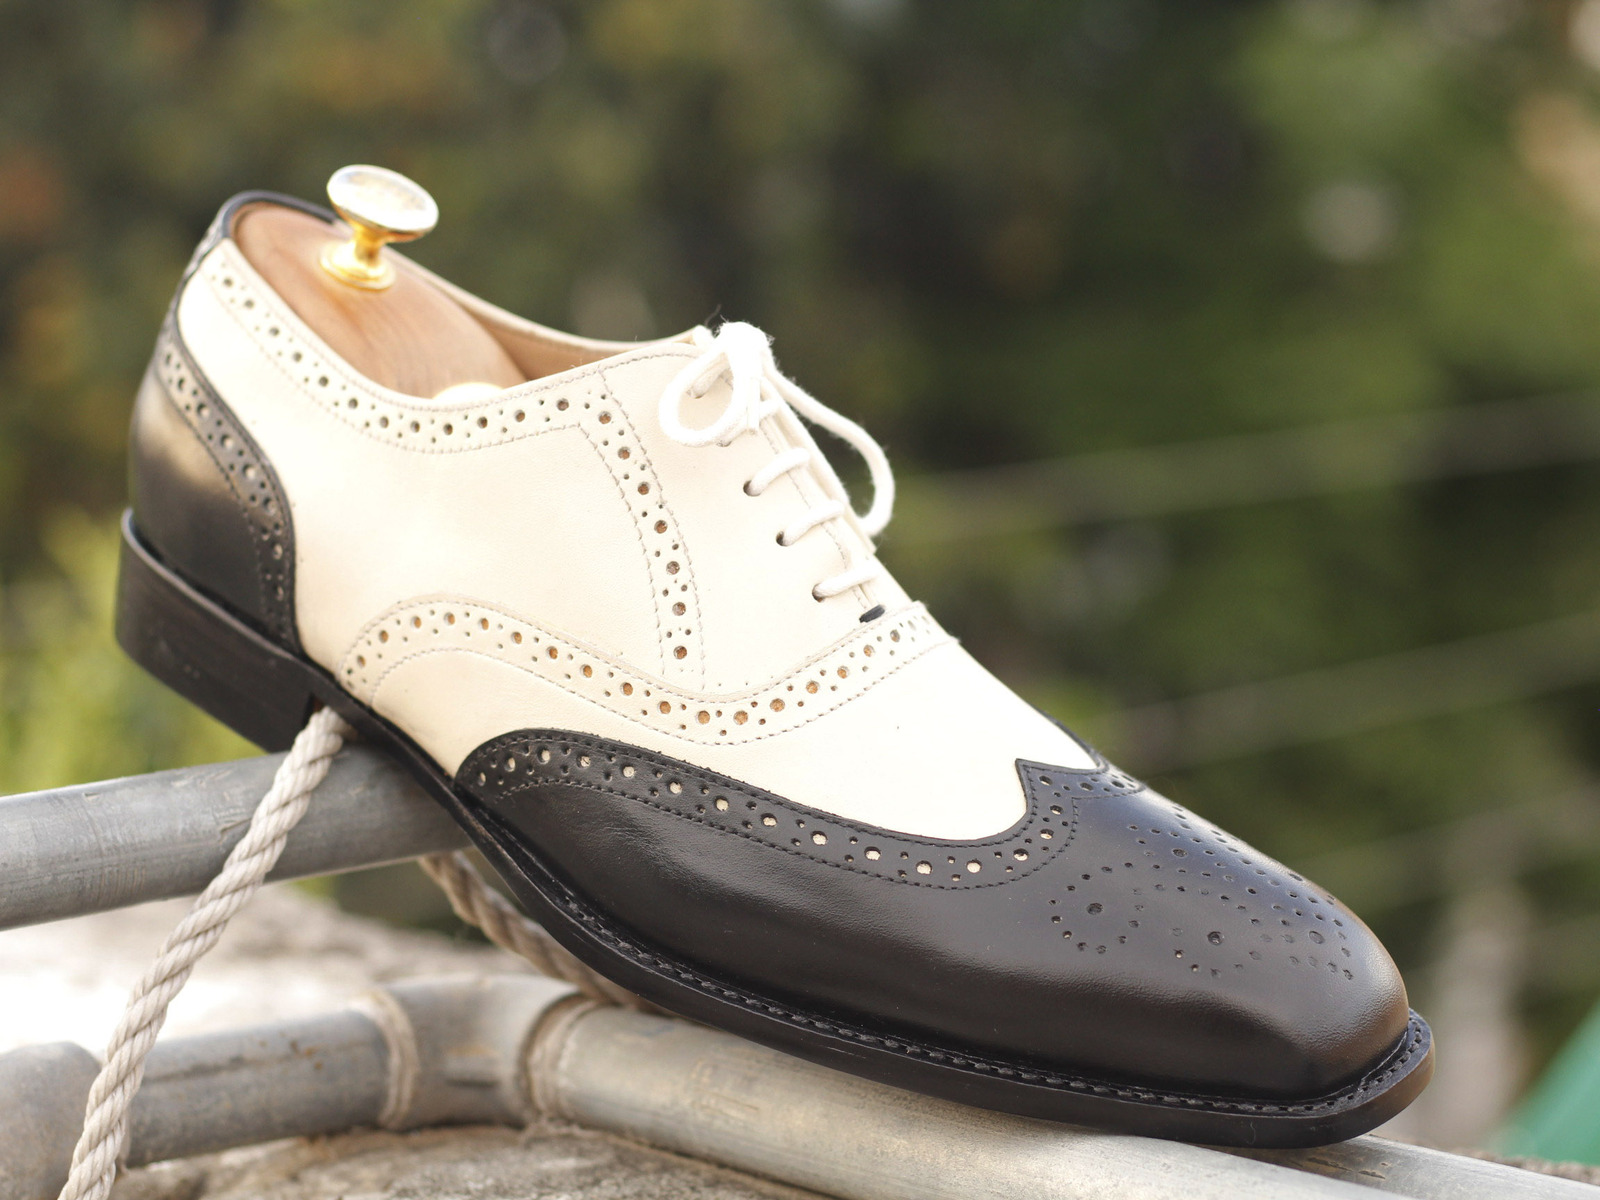 Primary image for Men's Wing tip Black White Leather Shoes, Oxford Dress Stylish Shoes